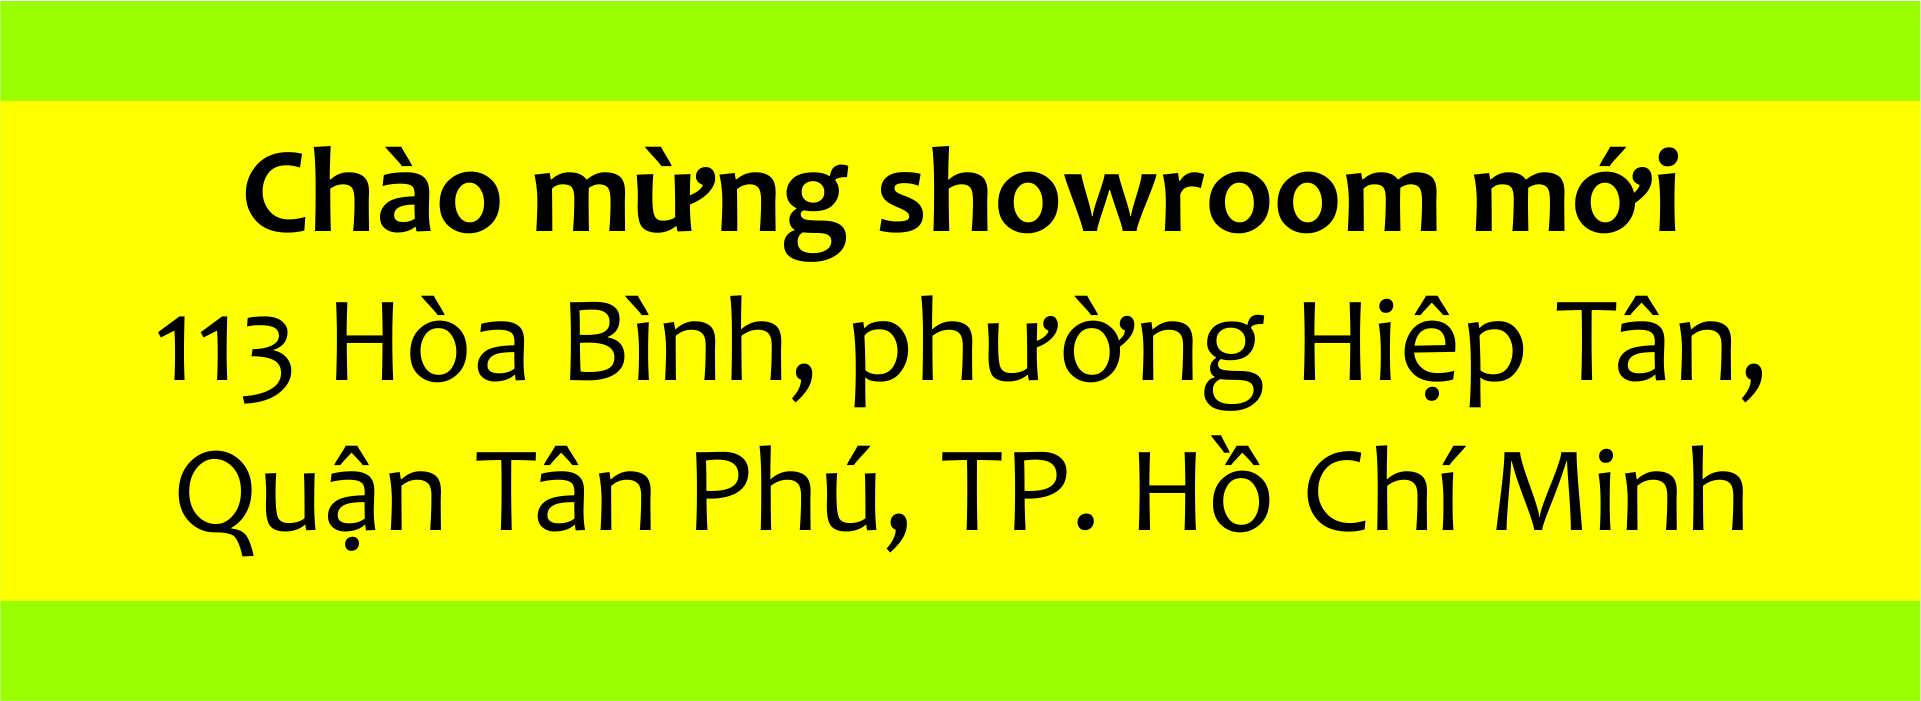 Showroom mới